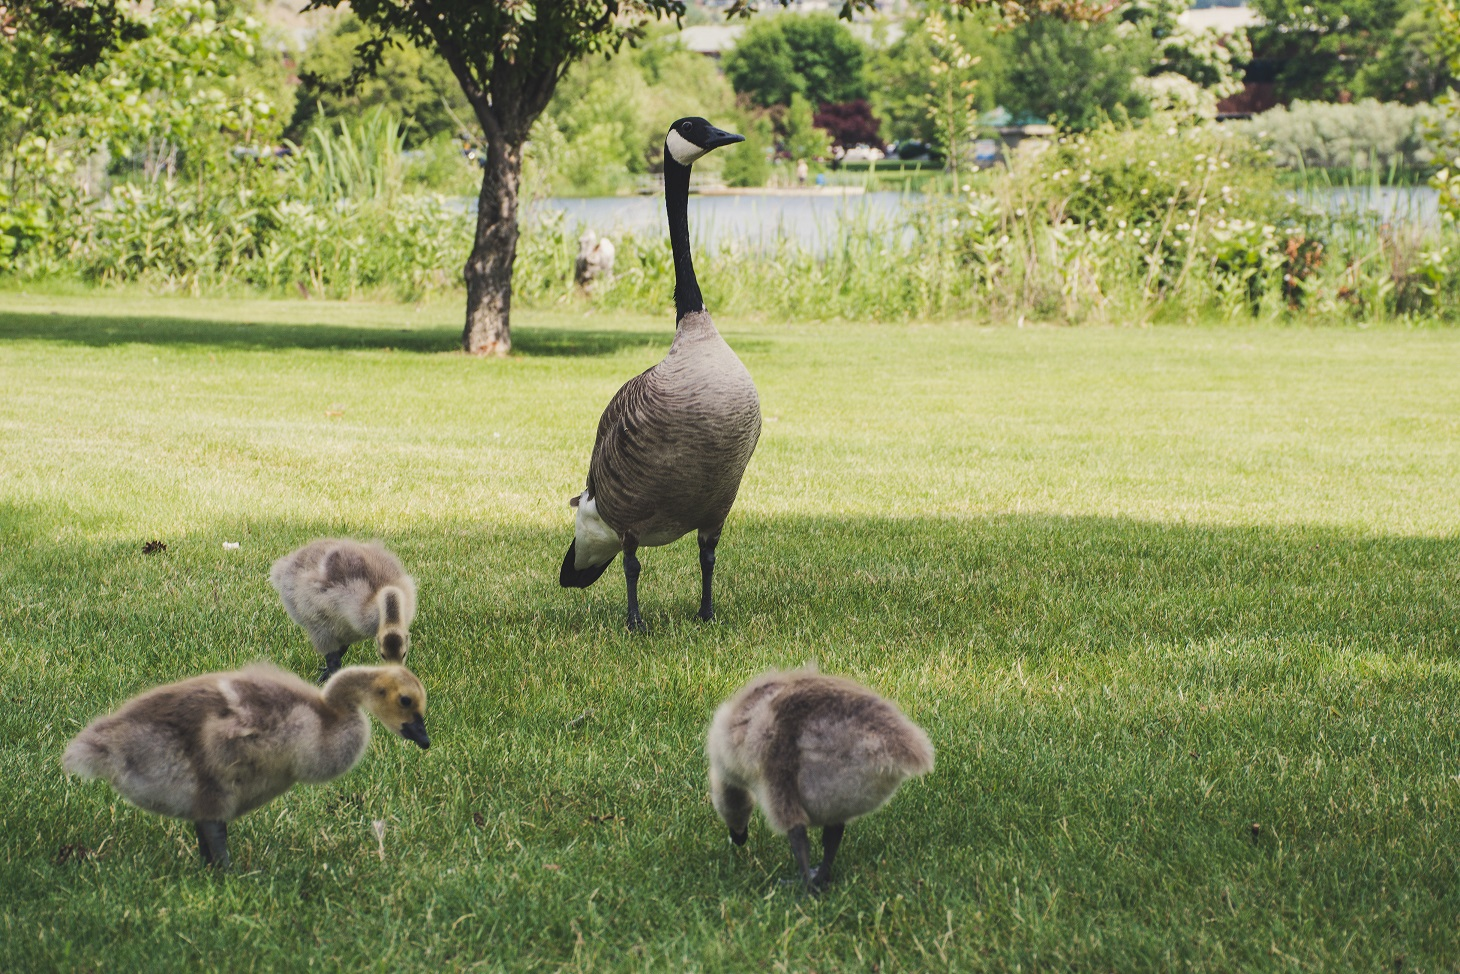 Mother Goose watching over her young goslings, Canada